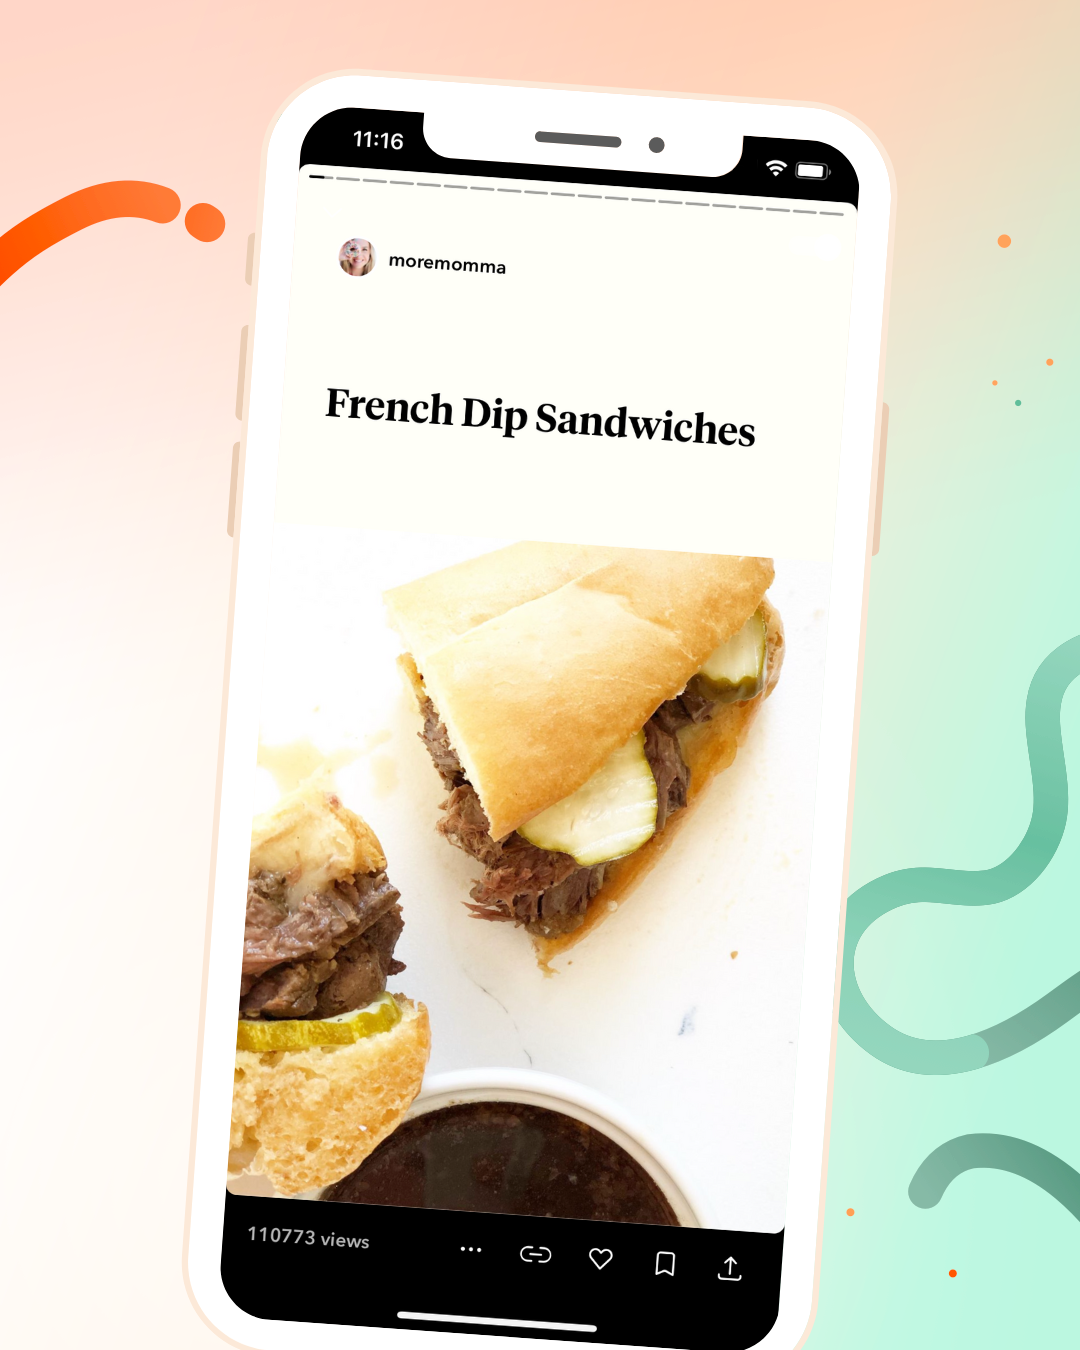 Jumprope screenshot of french dip sandwiches